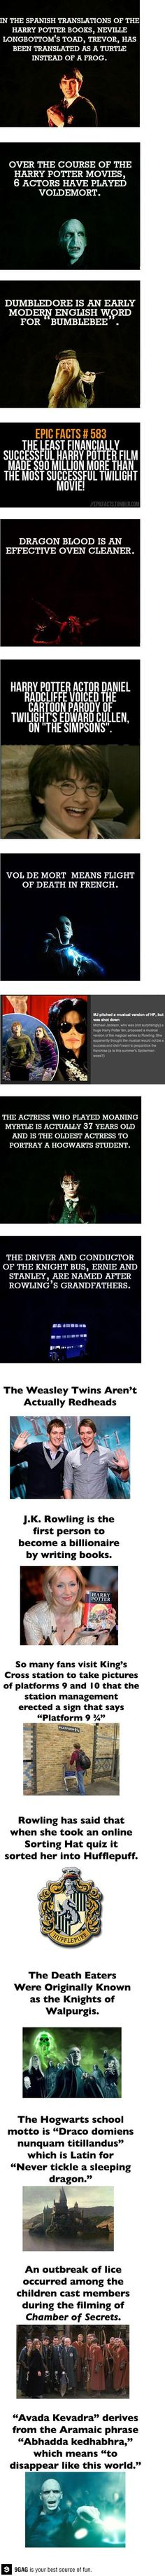 "Harry potter facts and by ""Voldermort"" they mean Tom Riddle, He Who Must Not Be Named, and Voldermort combined."